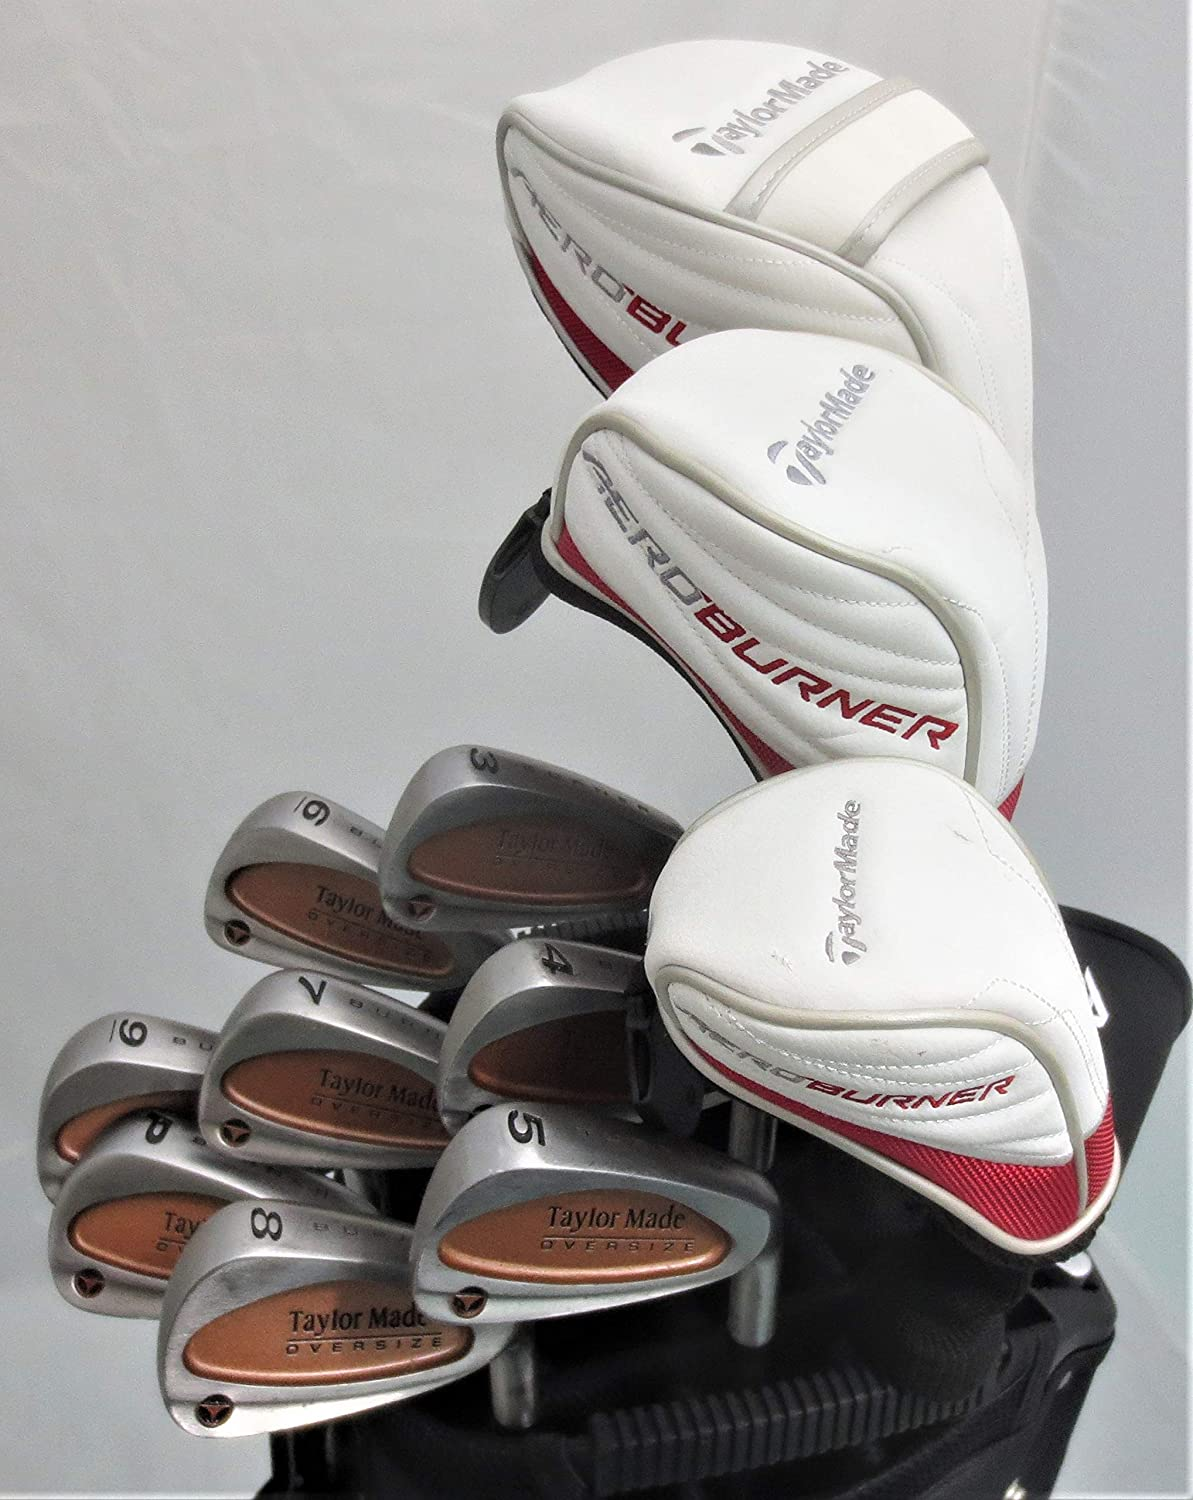 Amazon.com: Mens TaylorMade Set Completo de Golf conductor ...